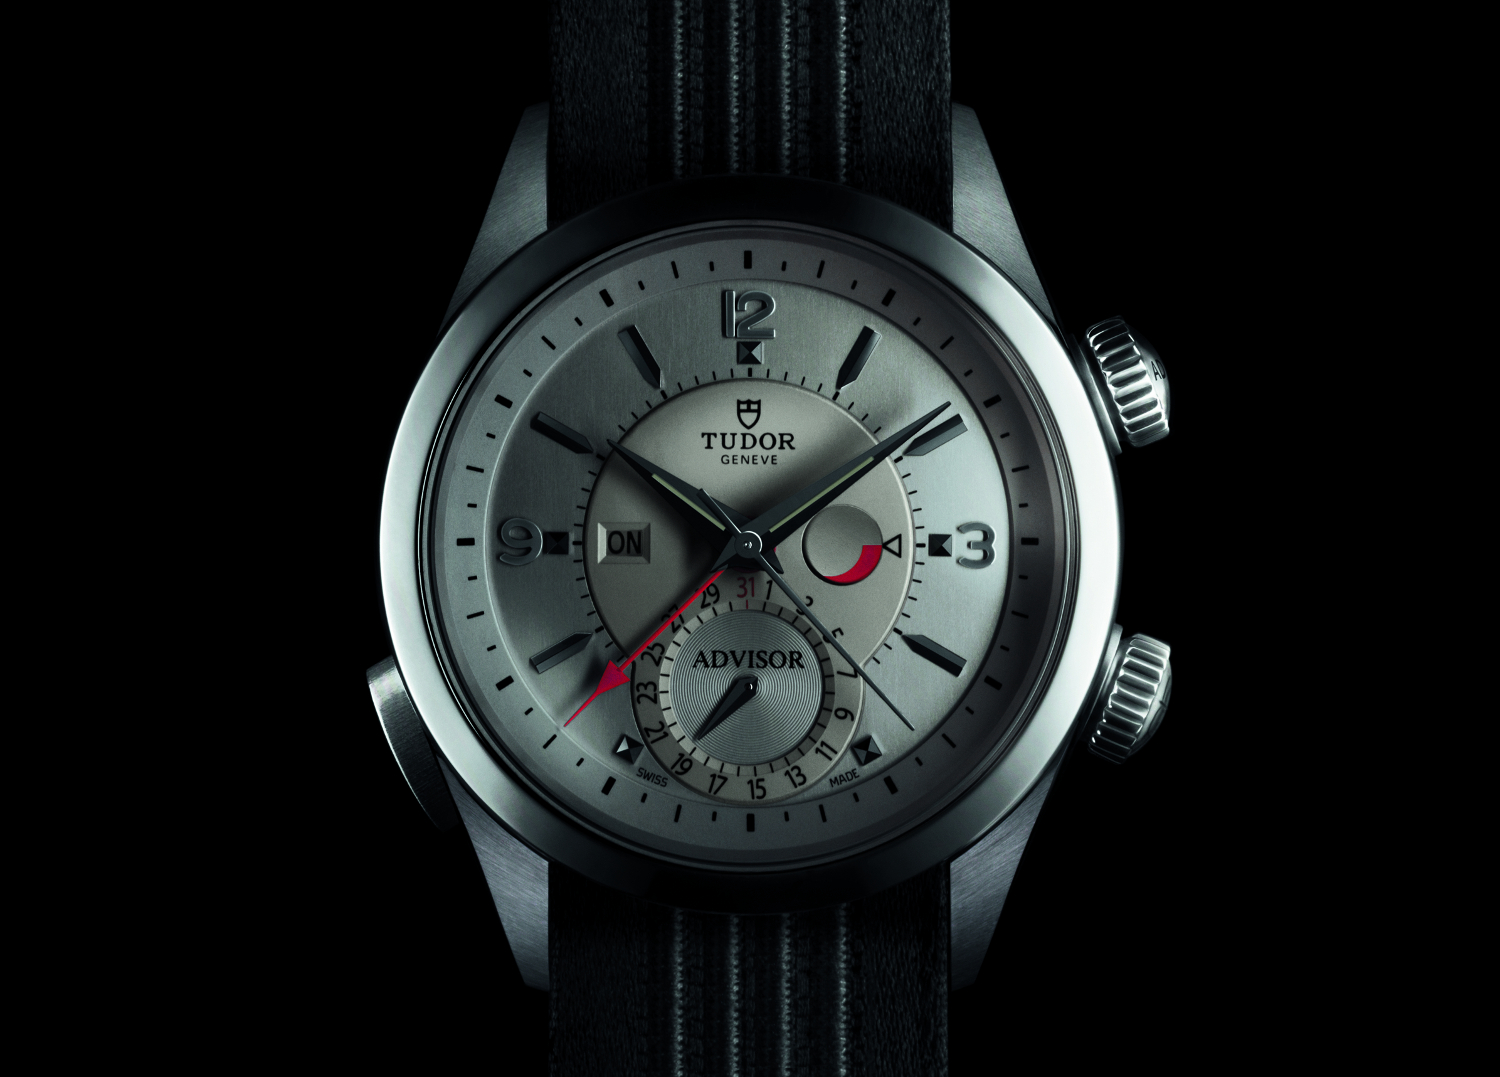 The Tudor Advisor  Ref. 79620. Photo courtesy of Tudor.